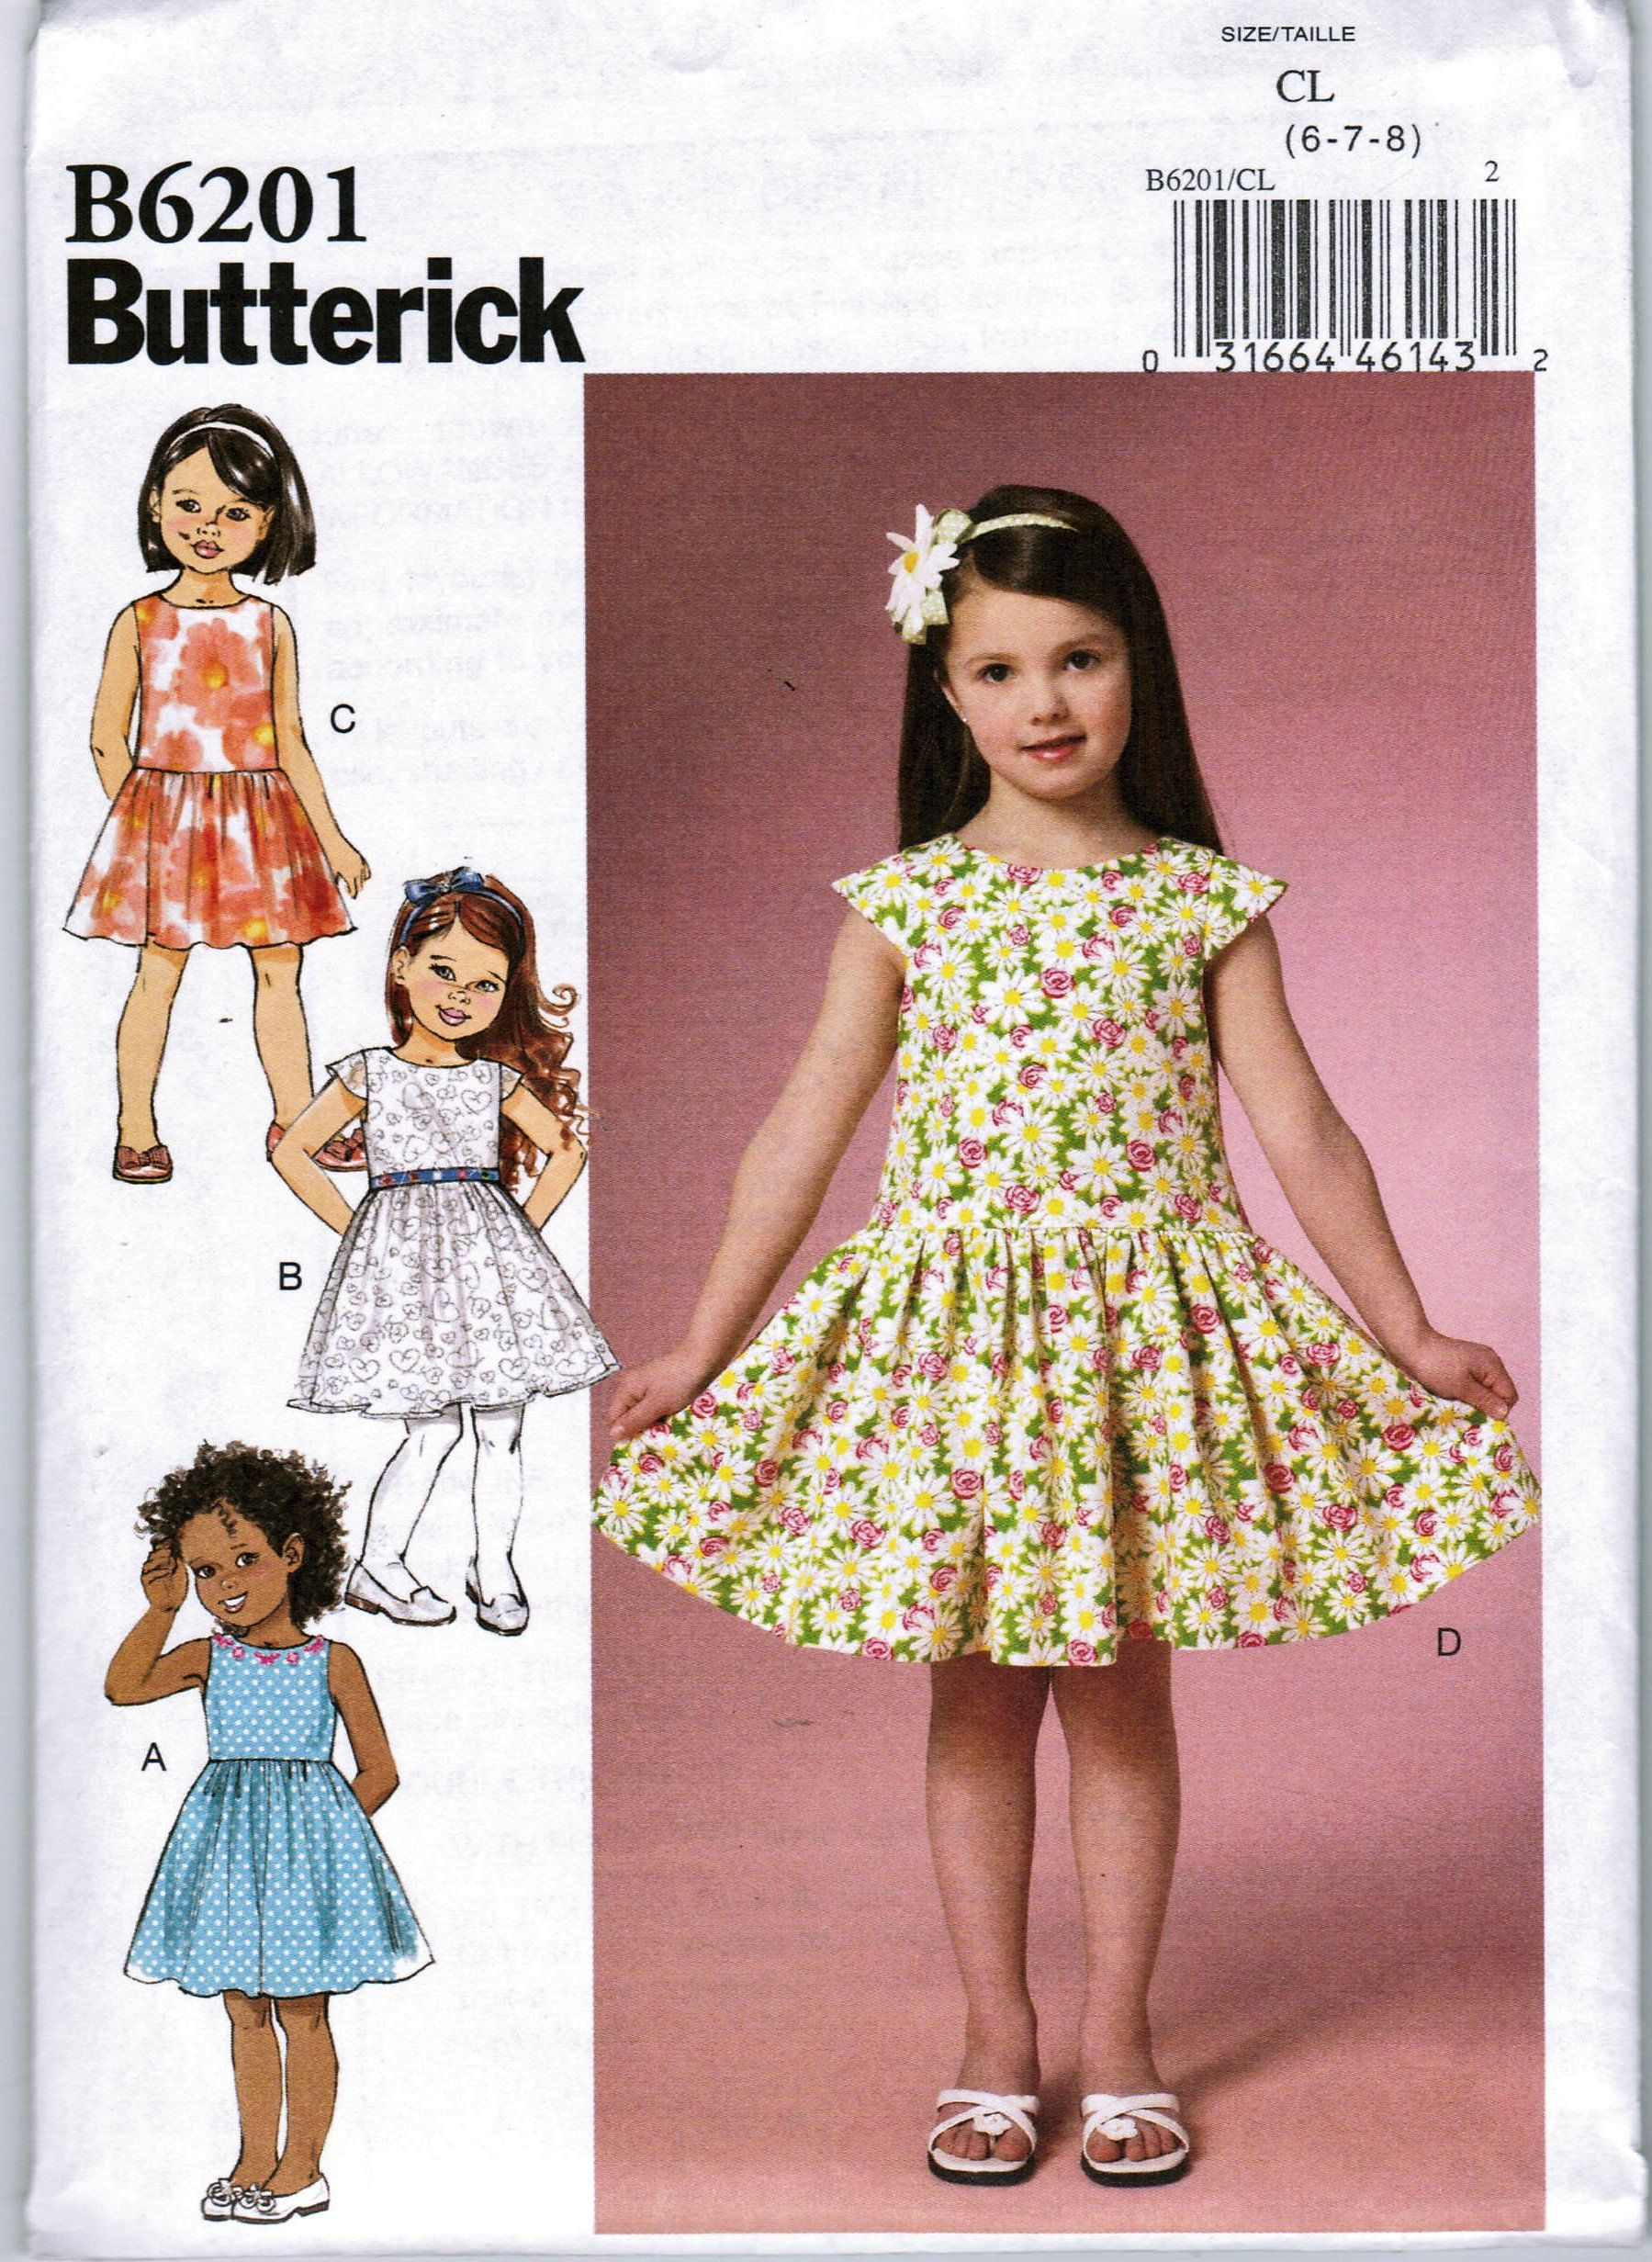 6bbf823ccd74 Butterick B6201 Children's Girls Dress Size 6 7 8 Sewing Pattern Partial  Cut by makersmartfinds on Etsy